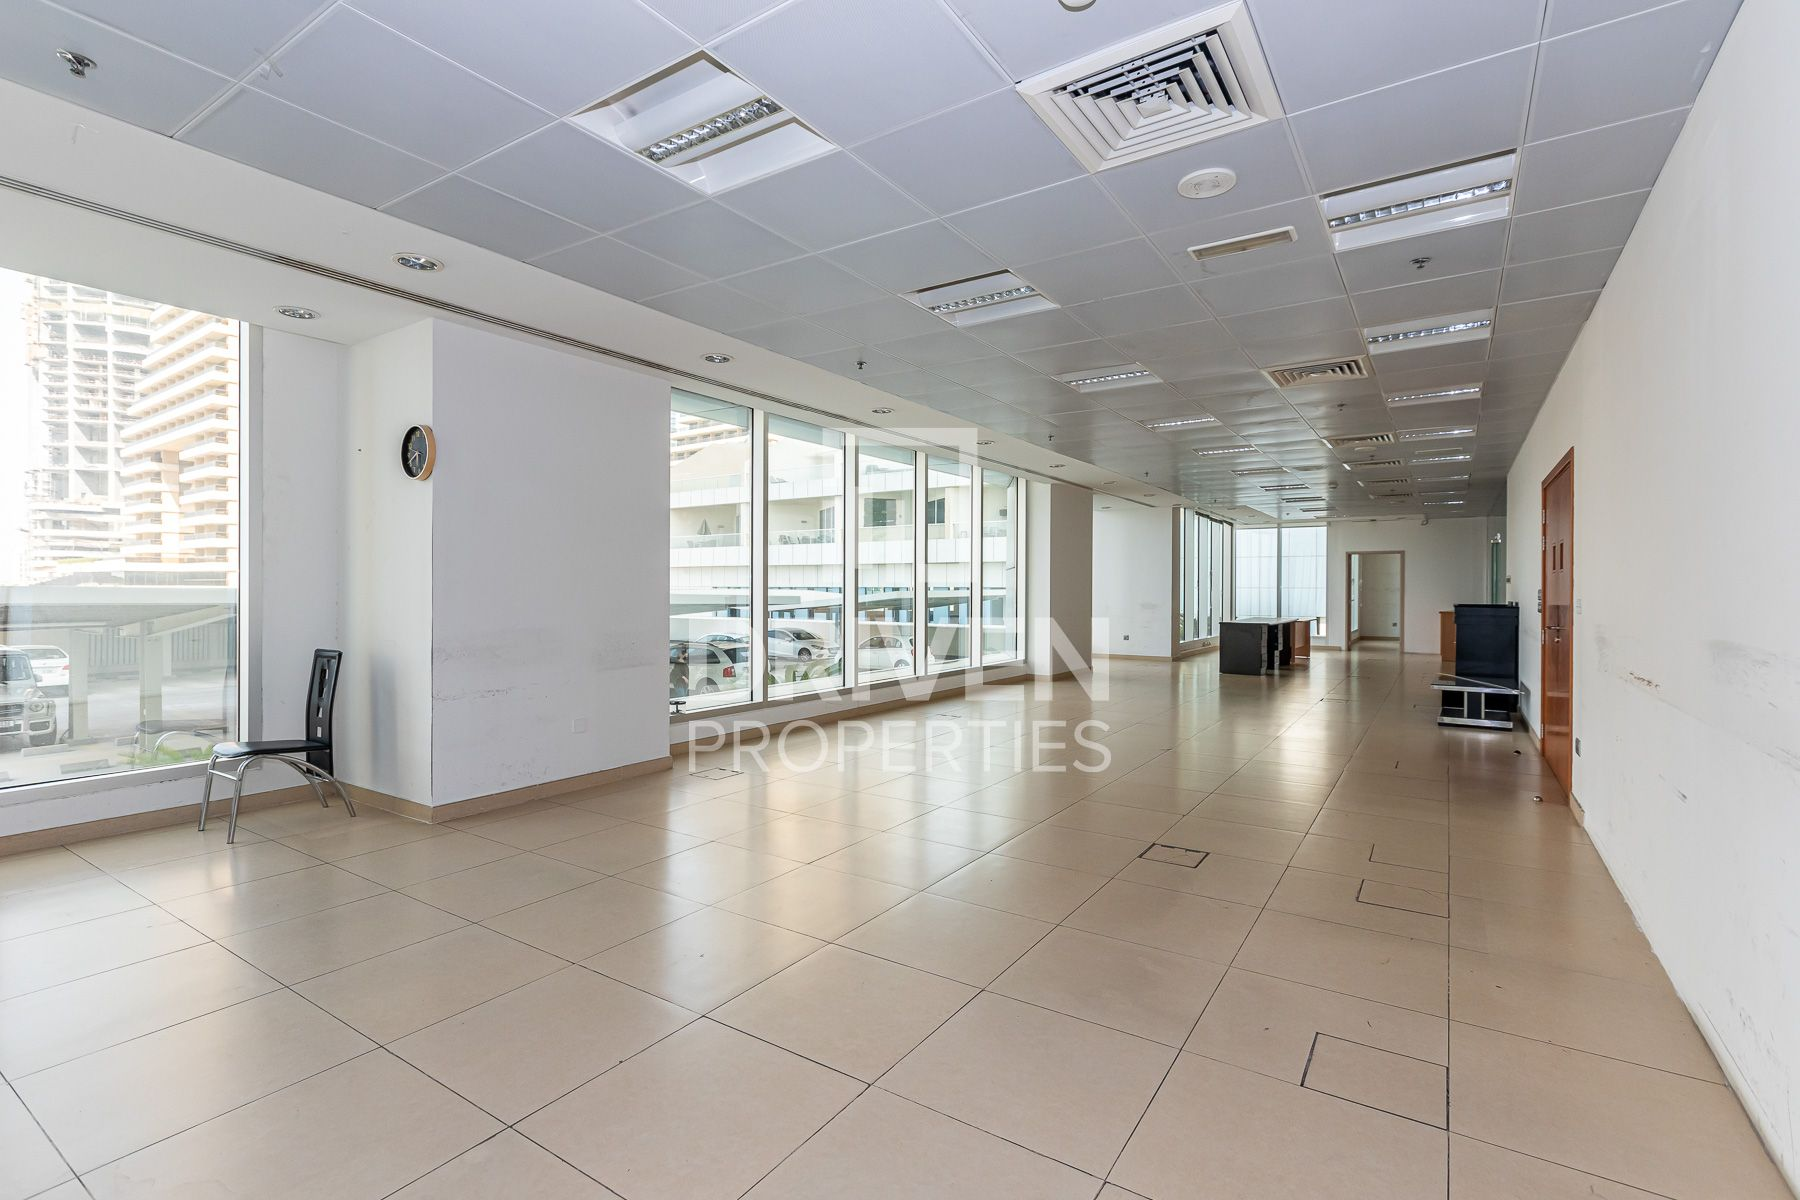 Multiple Offices Available and Well-kept